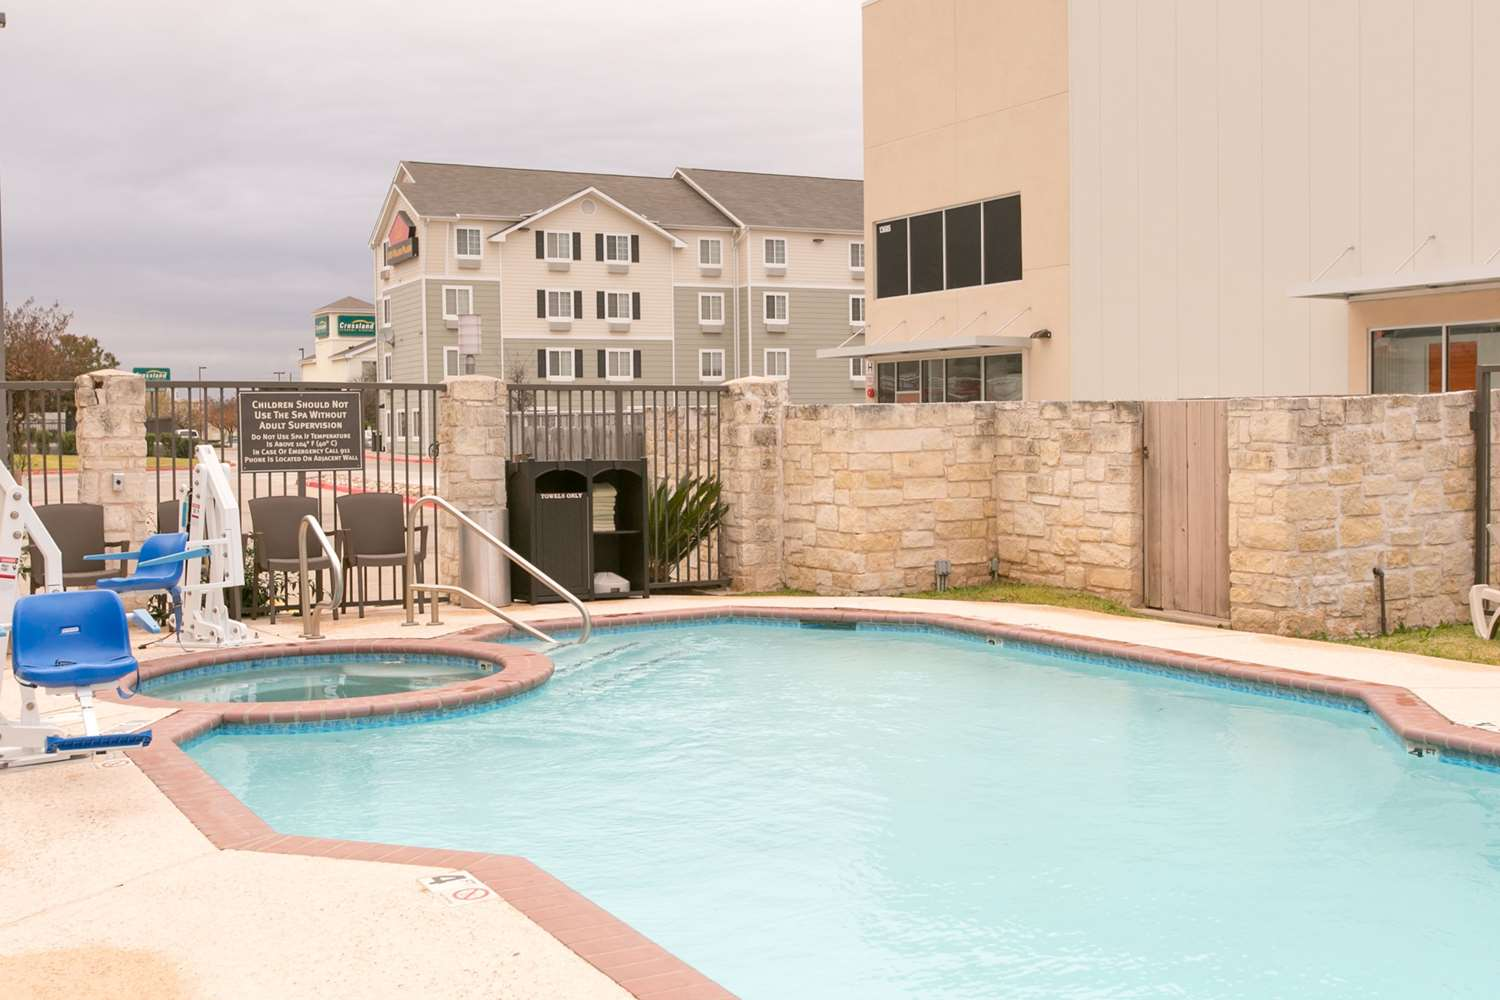 Pool - Comfort Suites US 183 Austin